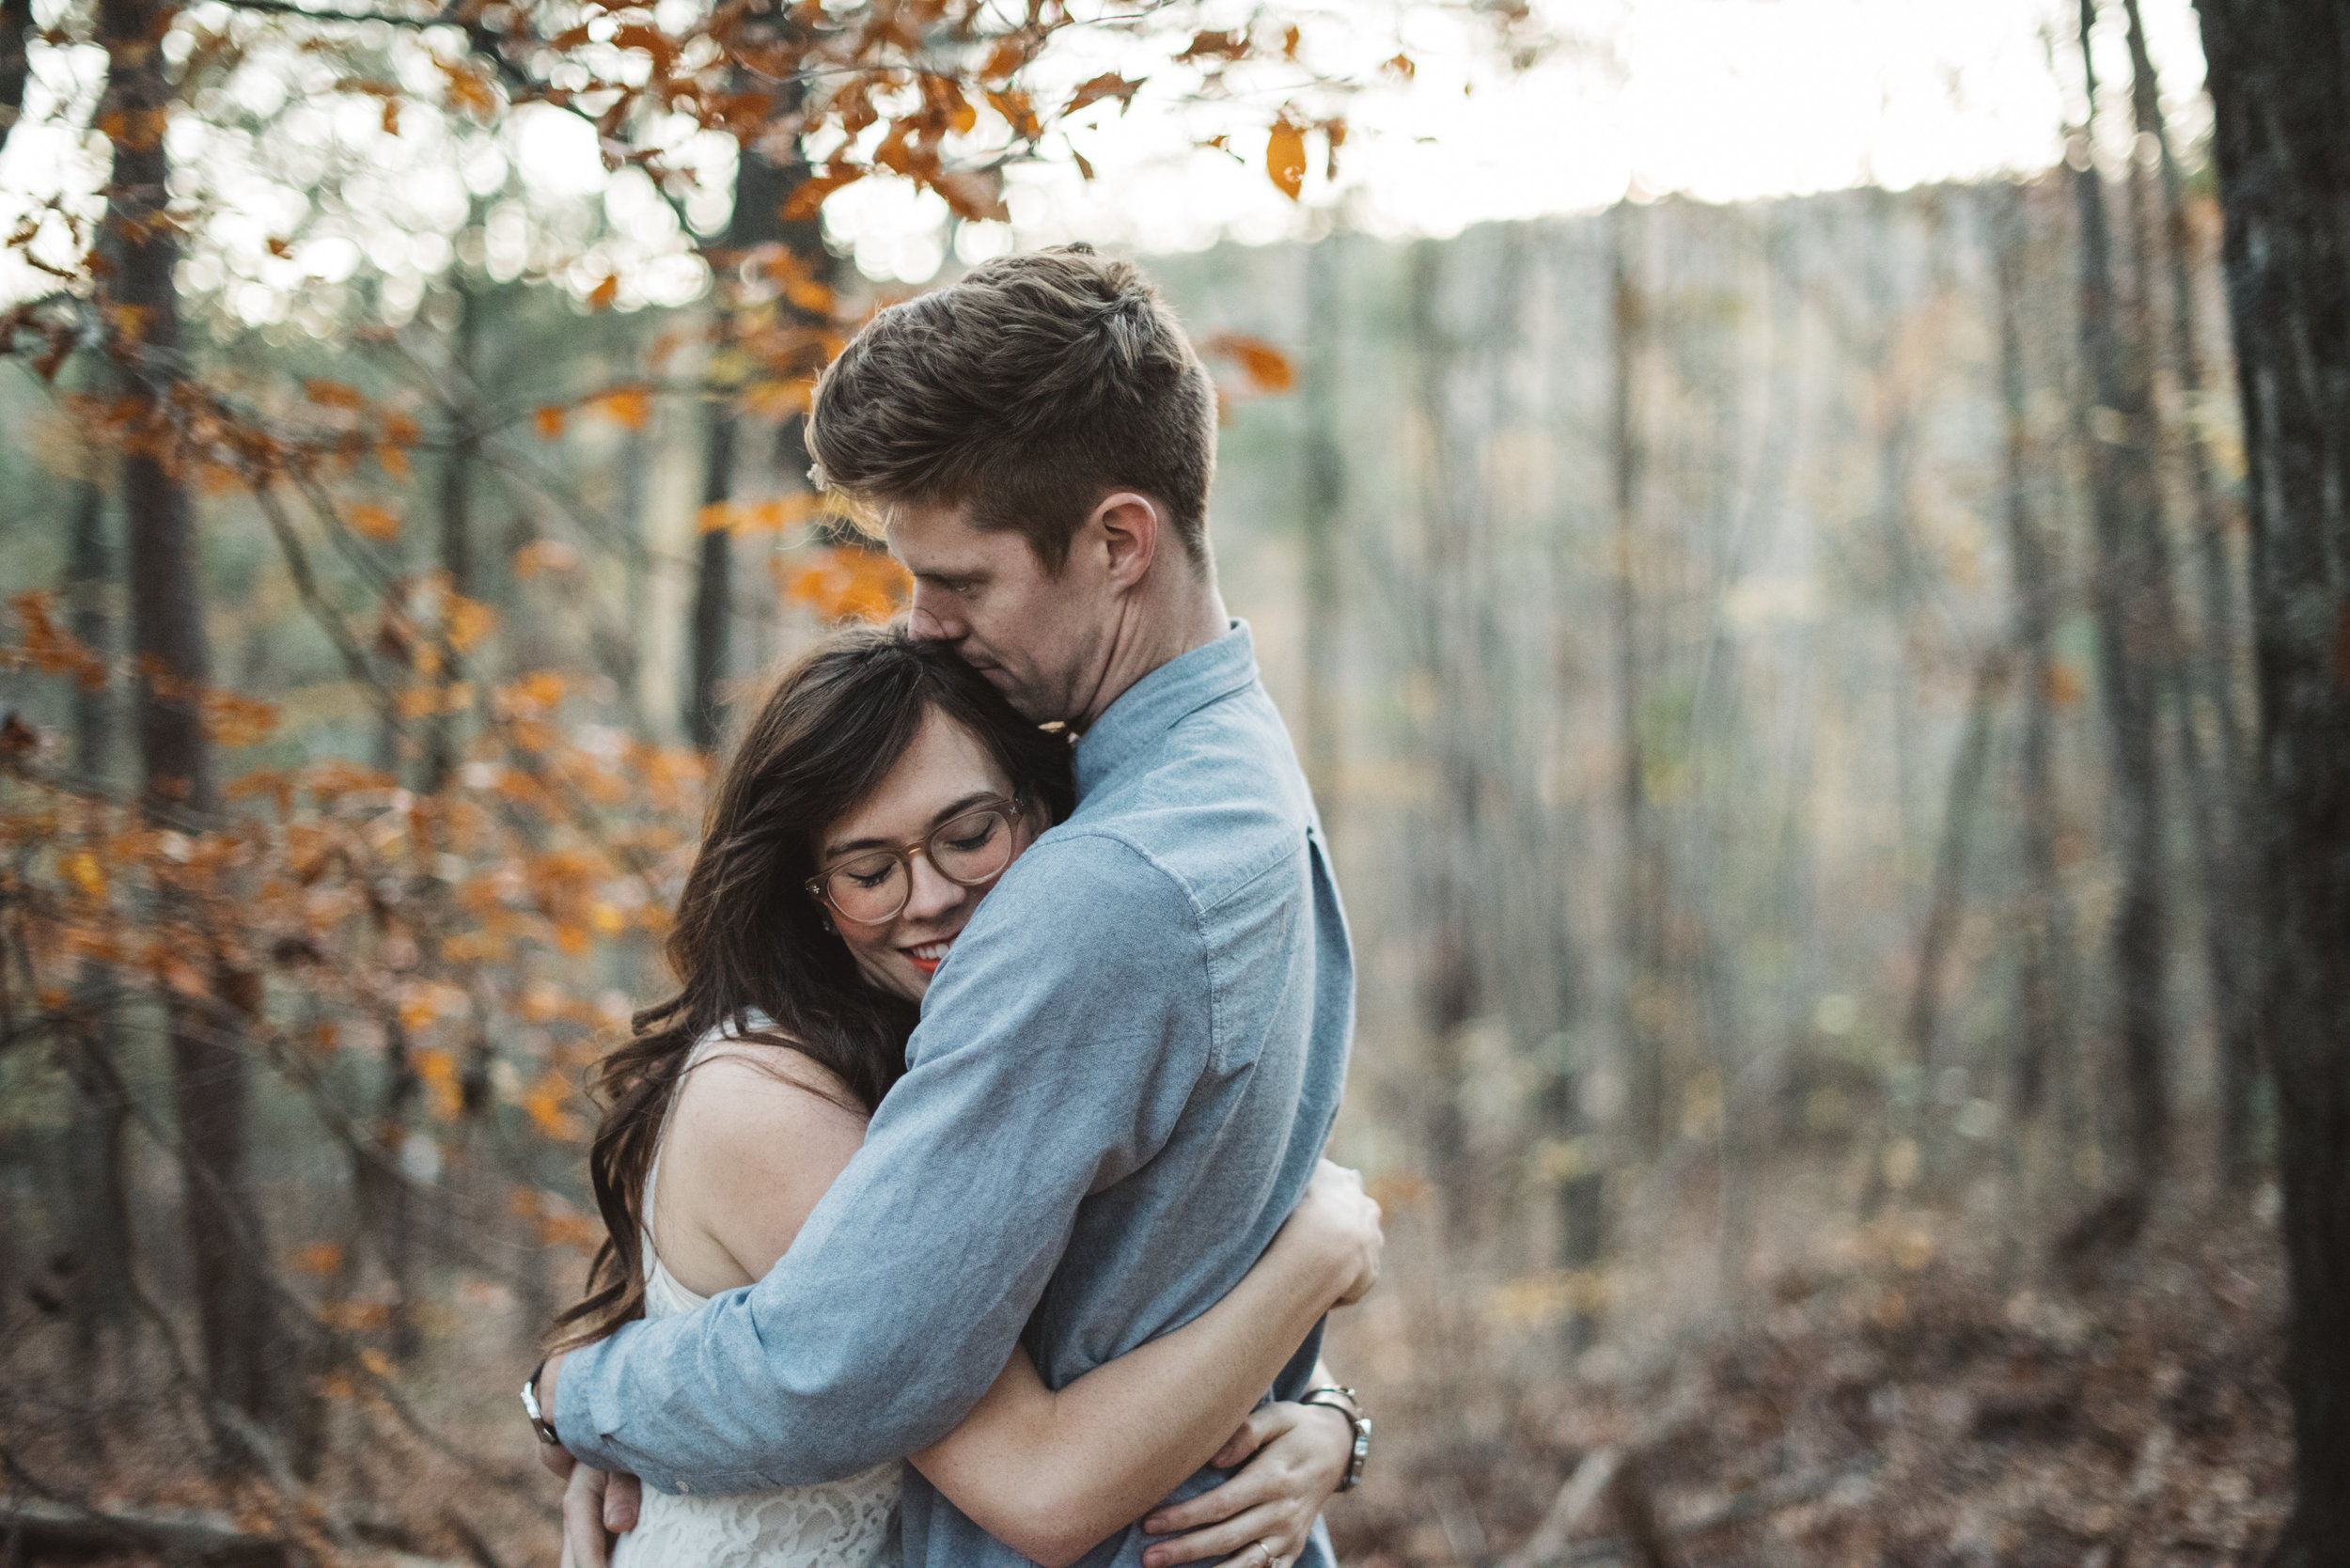 Asher Haley Engaged-asher and haley fin-0104.jpg